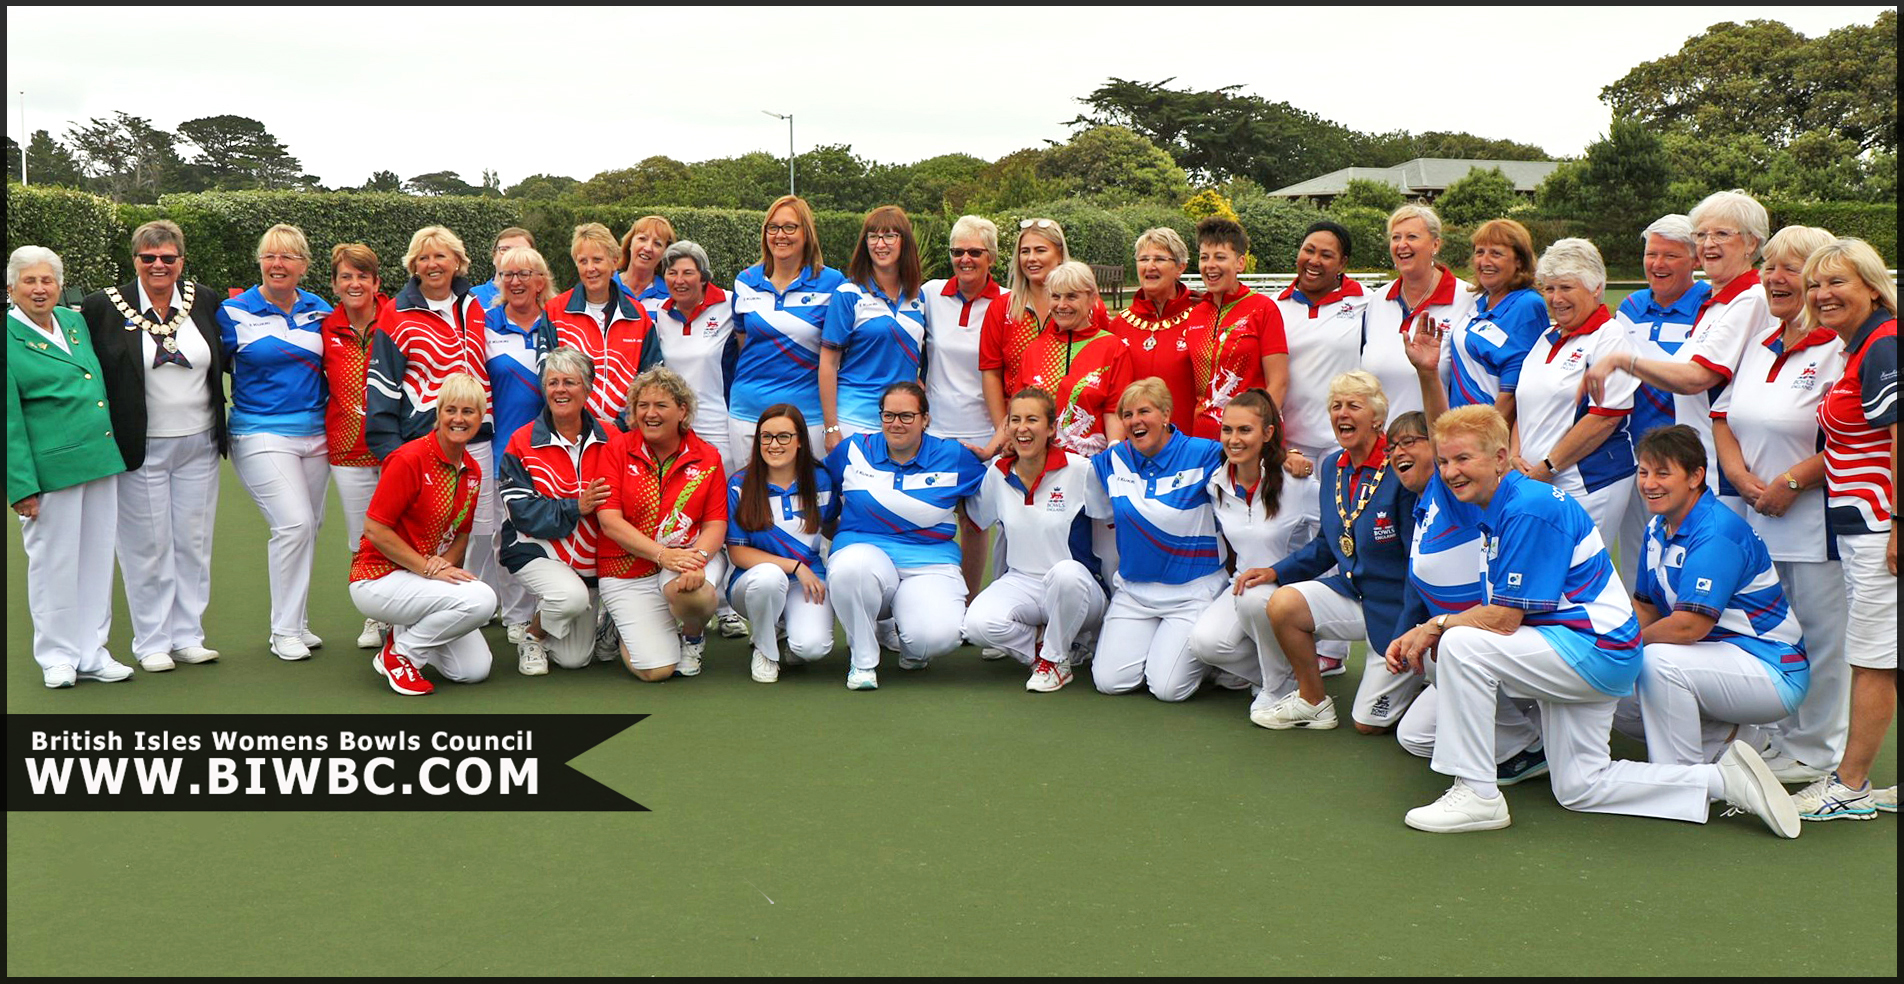 British Isles Women's Bowls Council Home